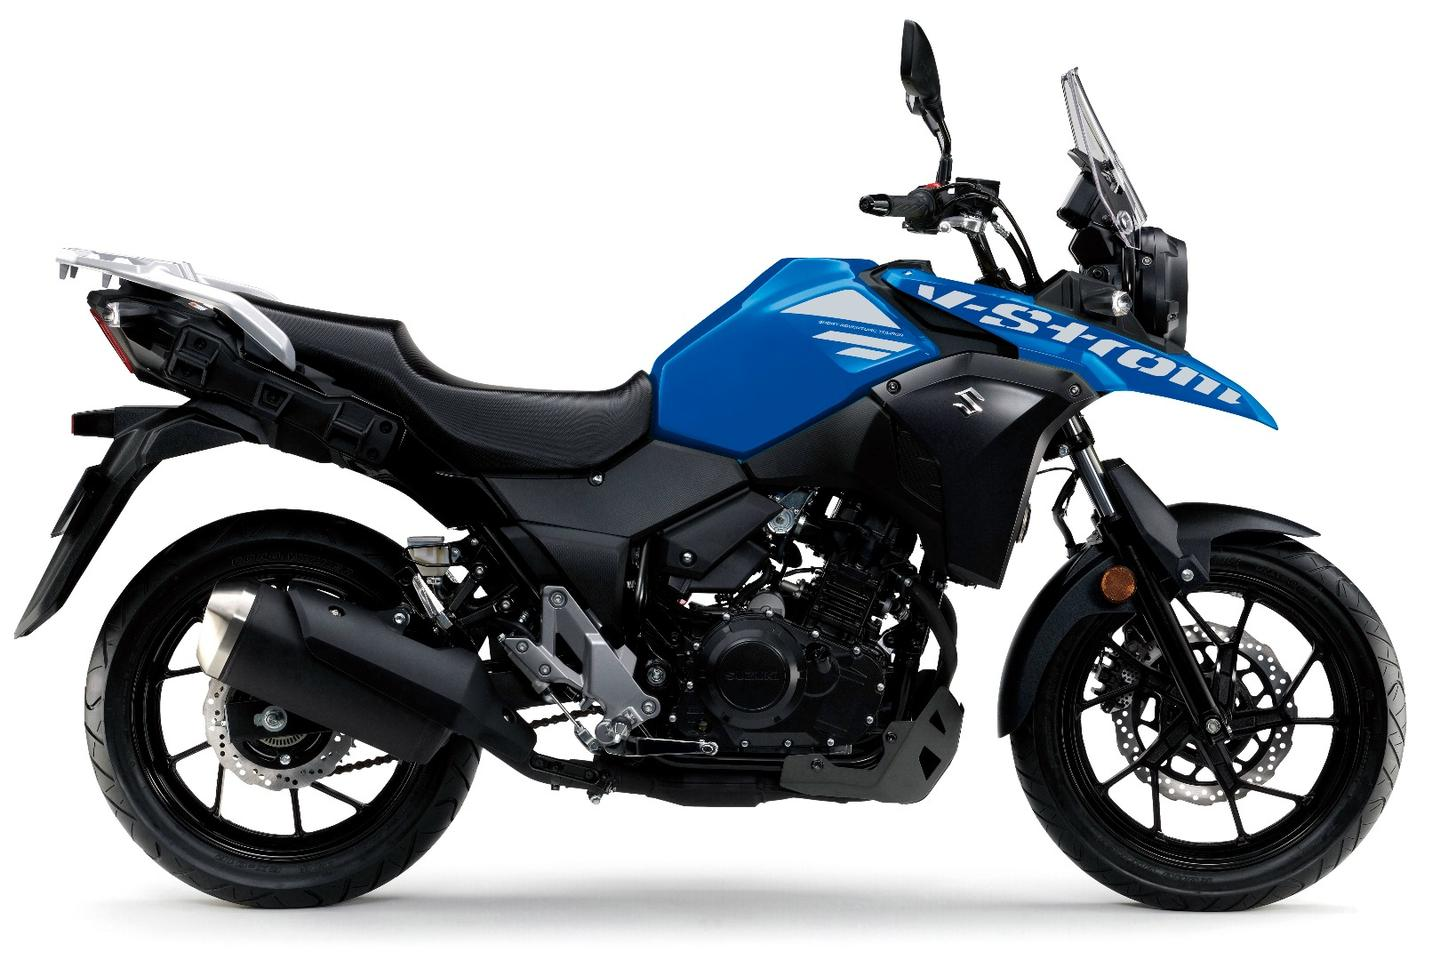 Suzuki V-Strom 250 ABS: long range soft-road touring for the shawties